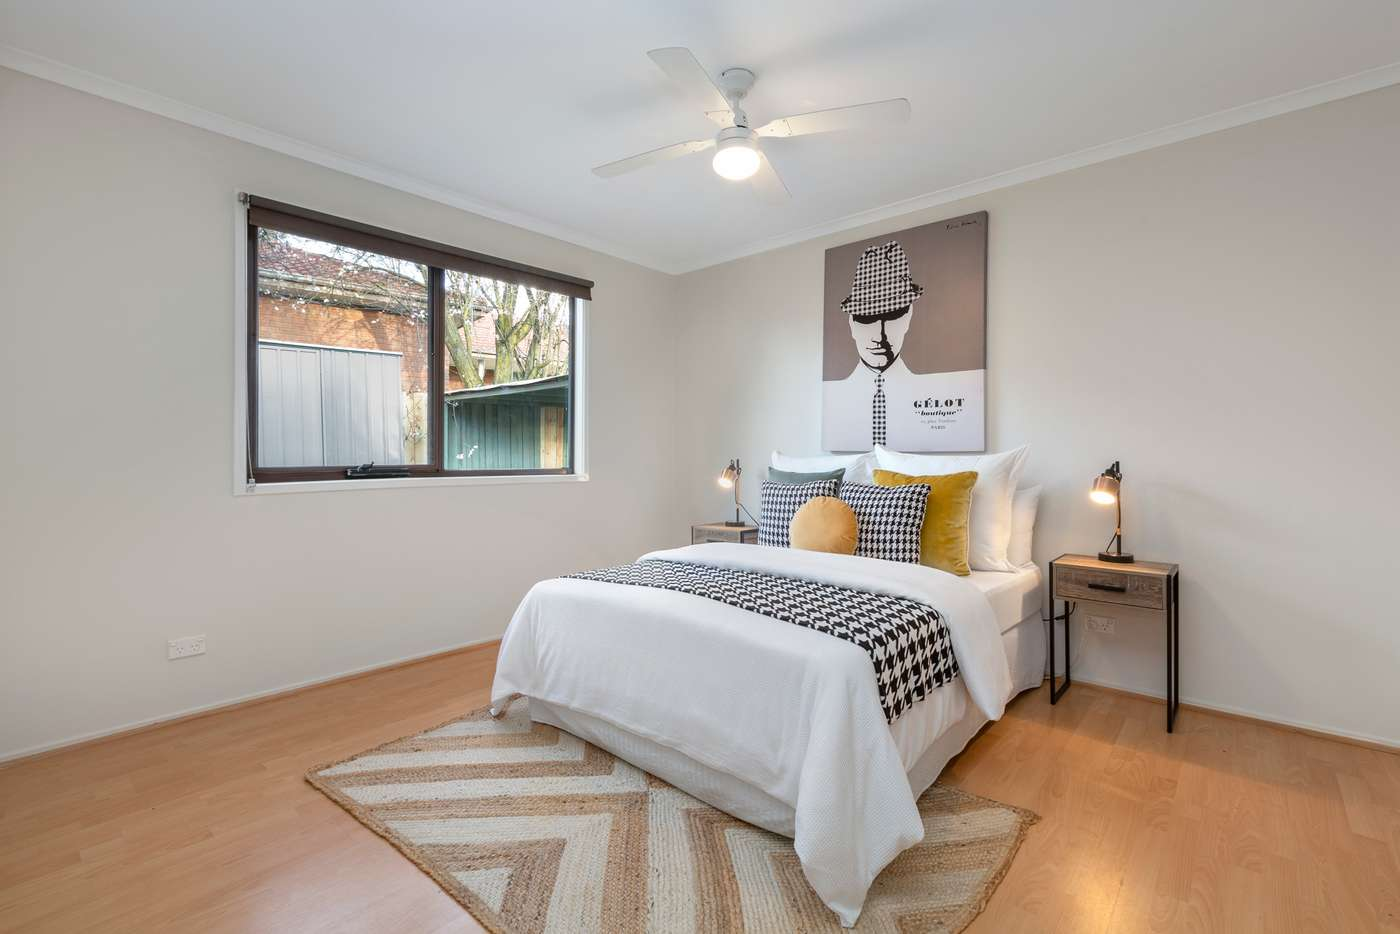 Sixth view of Homely unit listing, 2/25 Thurleigh Avenue, Croydon South VIC 3136